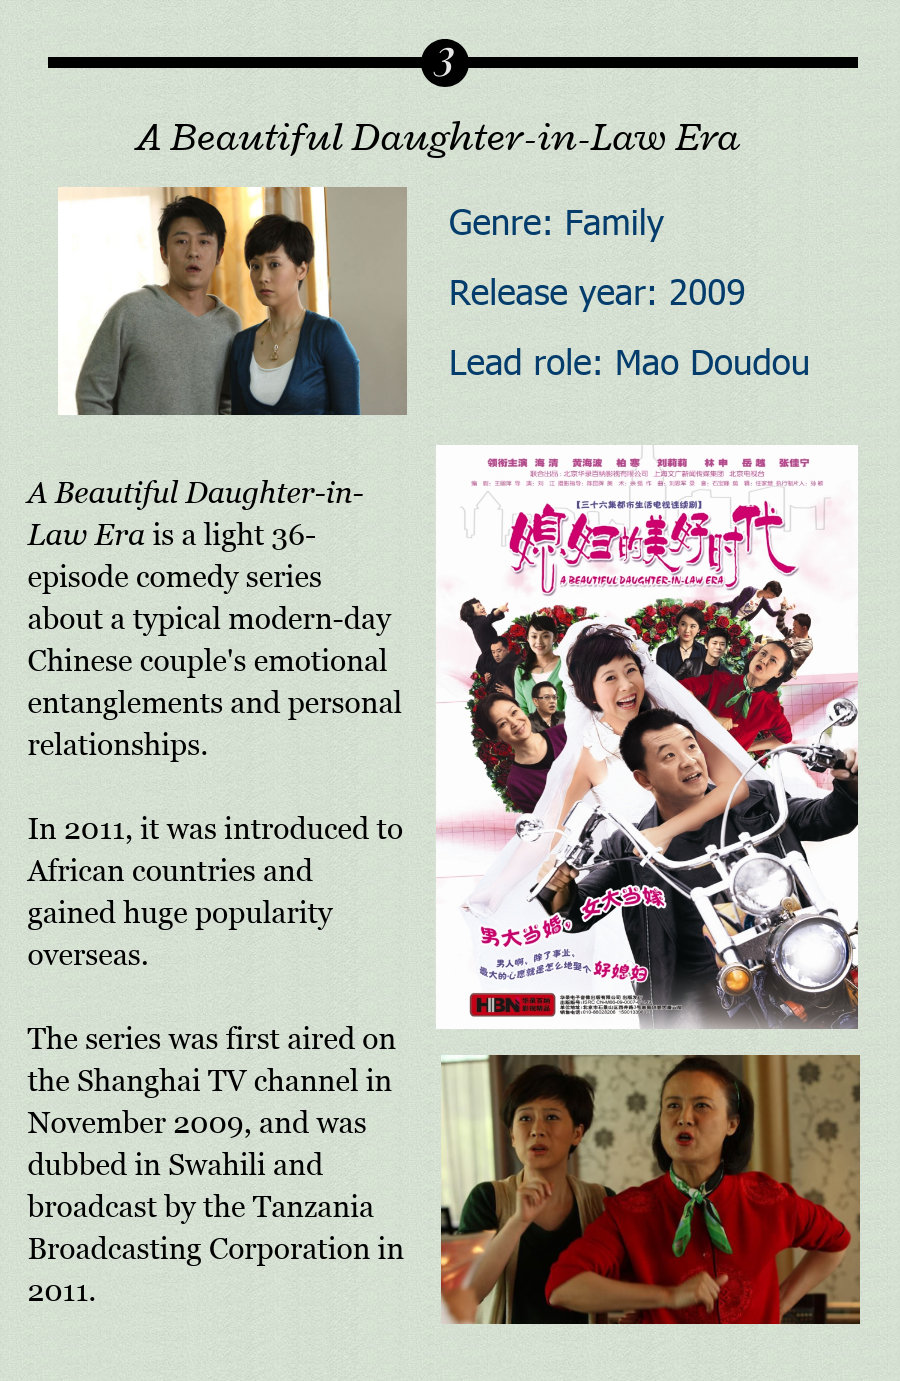 10 Chinese Dramas That are Popular in Africa - All China Women's